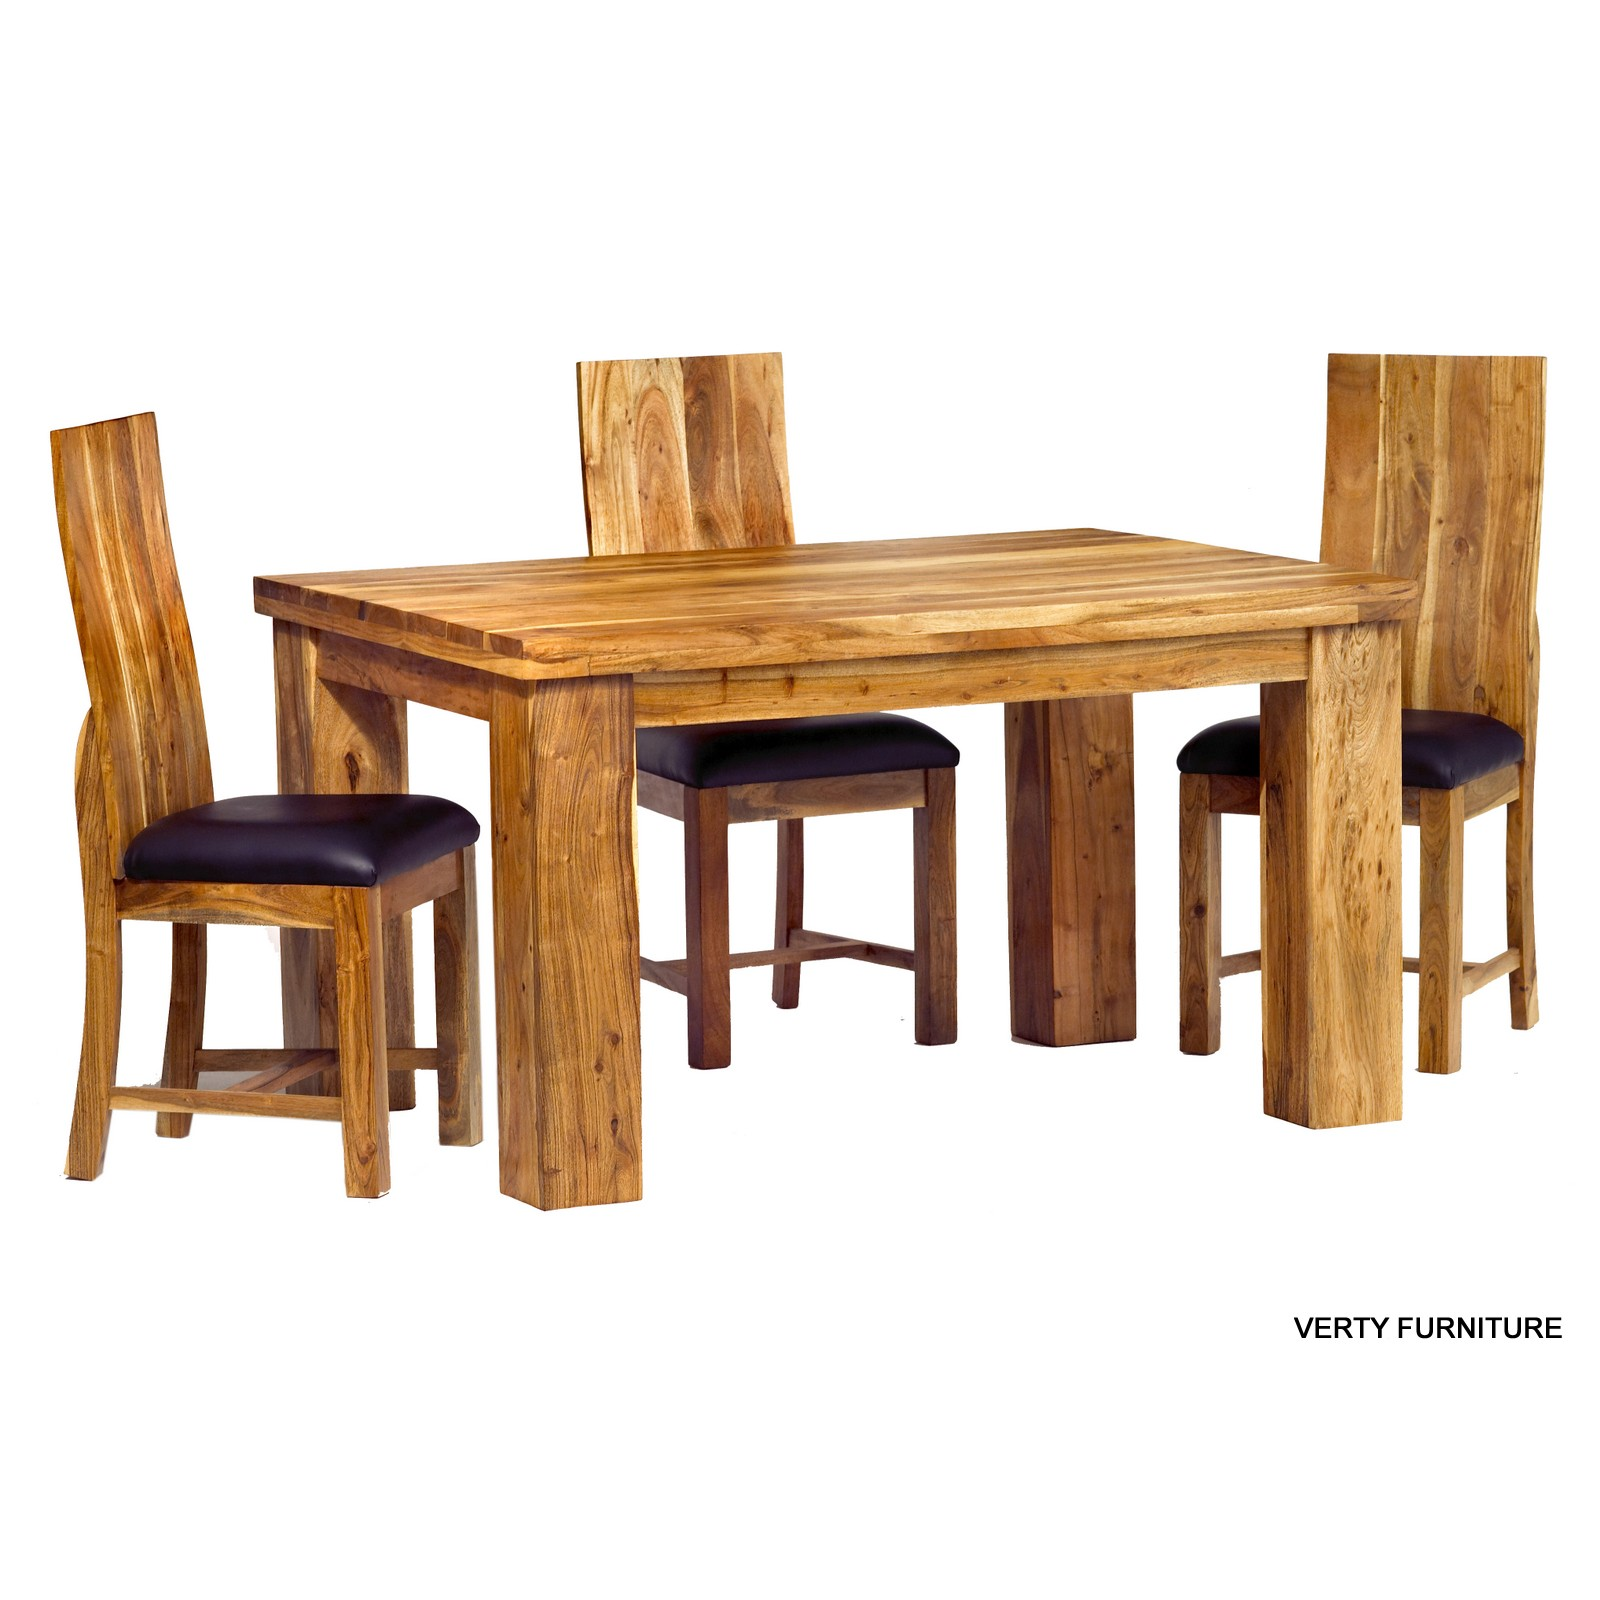 Acacia dining table small with 4 chairs verty indian for Dining chairs and tables